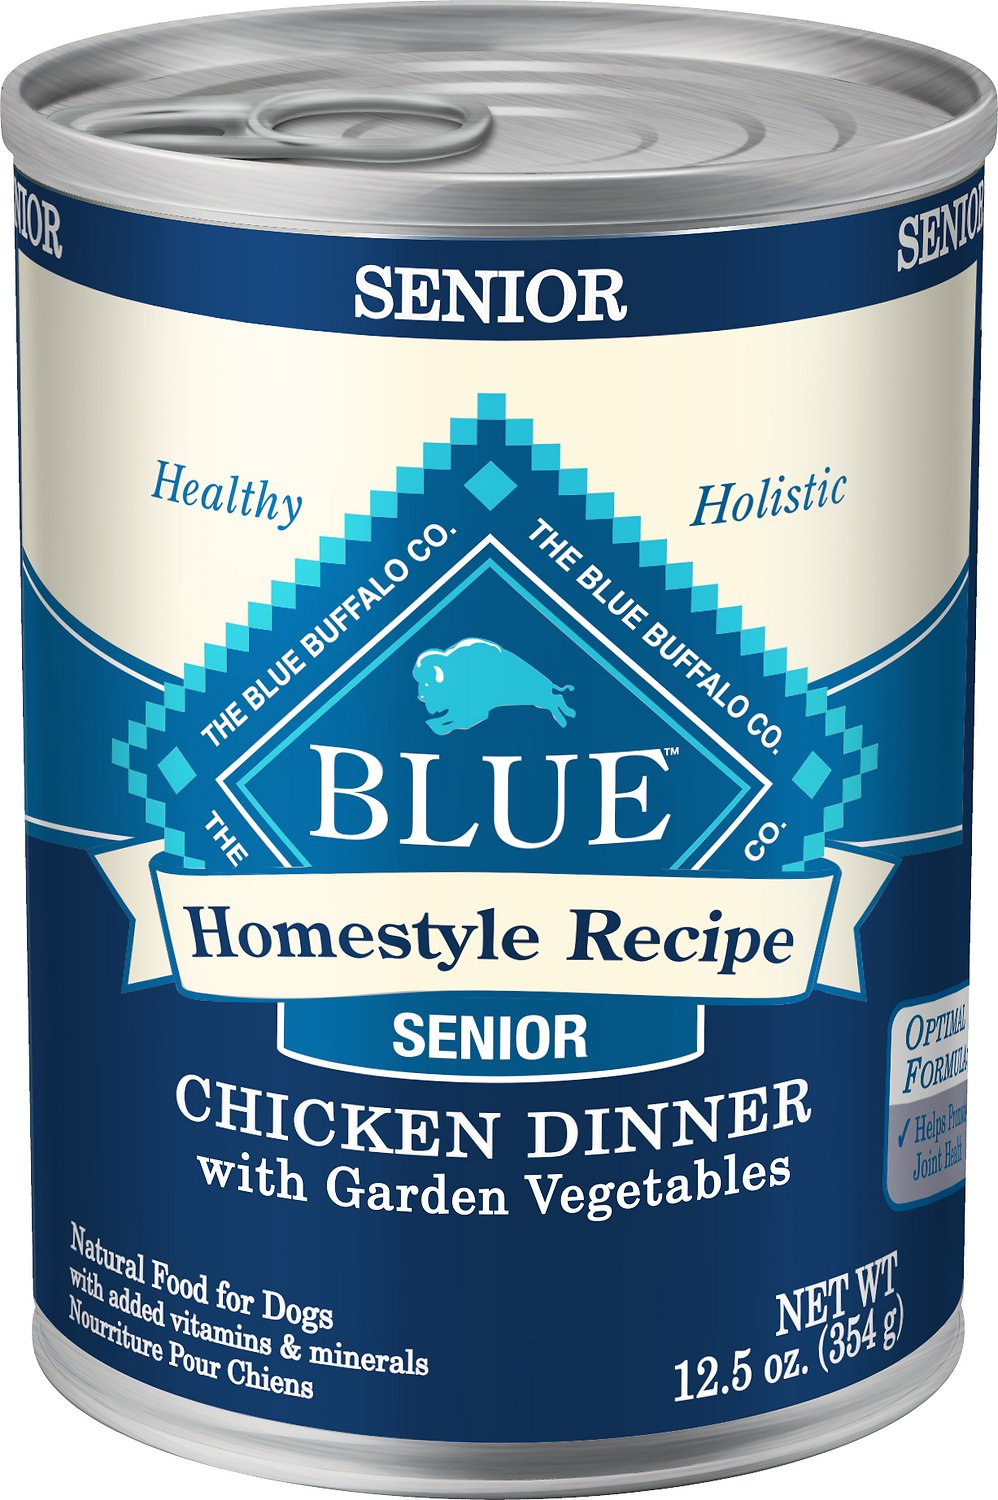 Blue Buffalo Homestyle Recipe Senior Chicken Dinner with Garden Vegetables Canned Dog Food, 12.5-oz